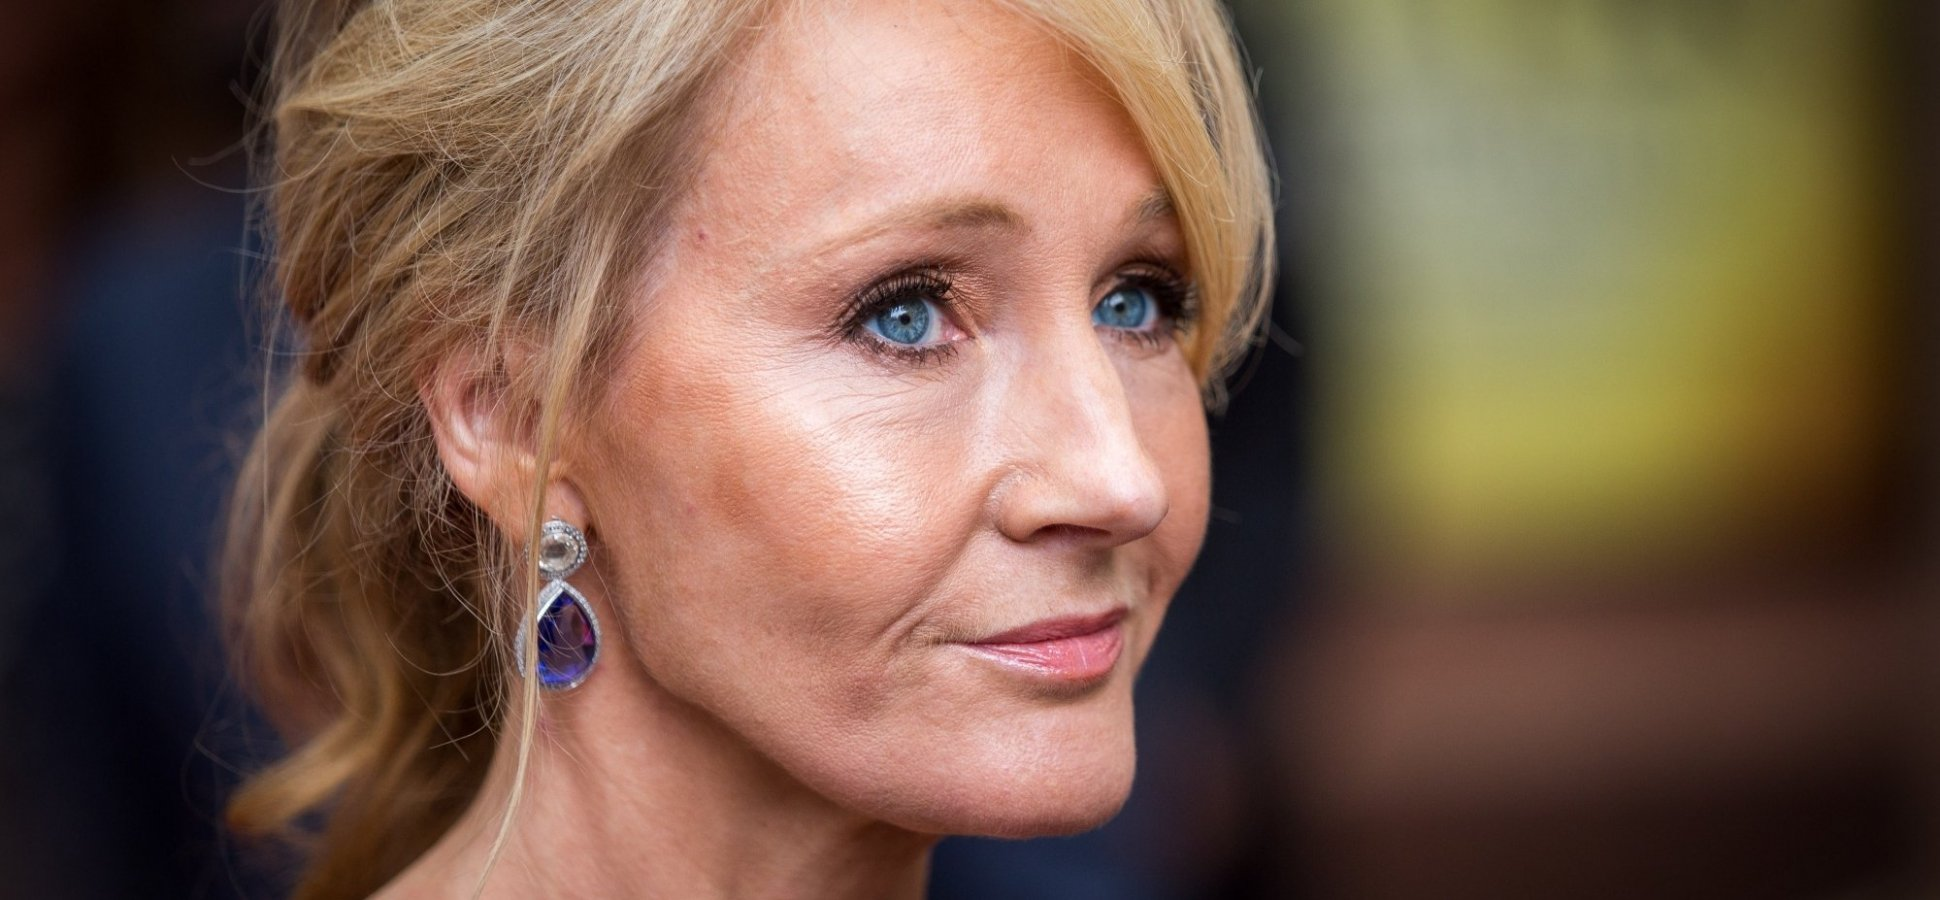 With 1 Tweet, J.K. Rowling Just Gave the Best Advice You'll Hear Today